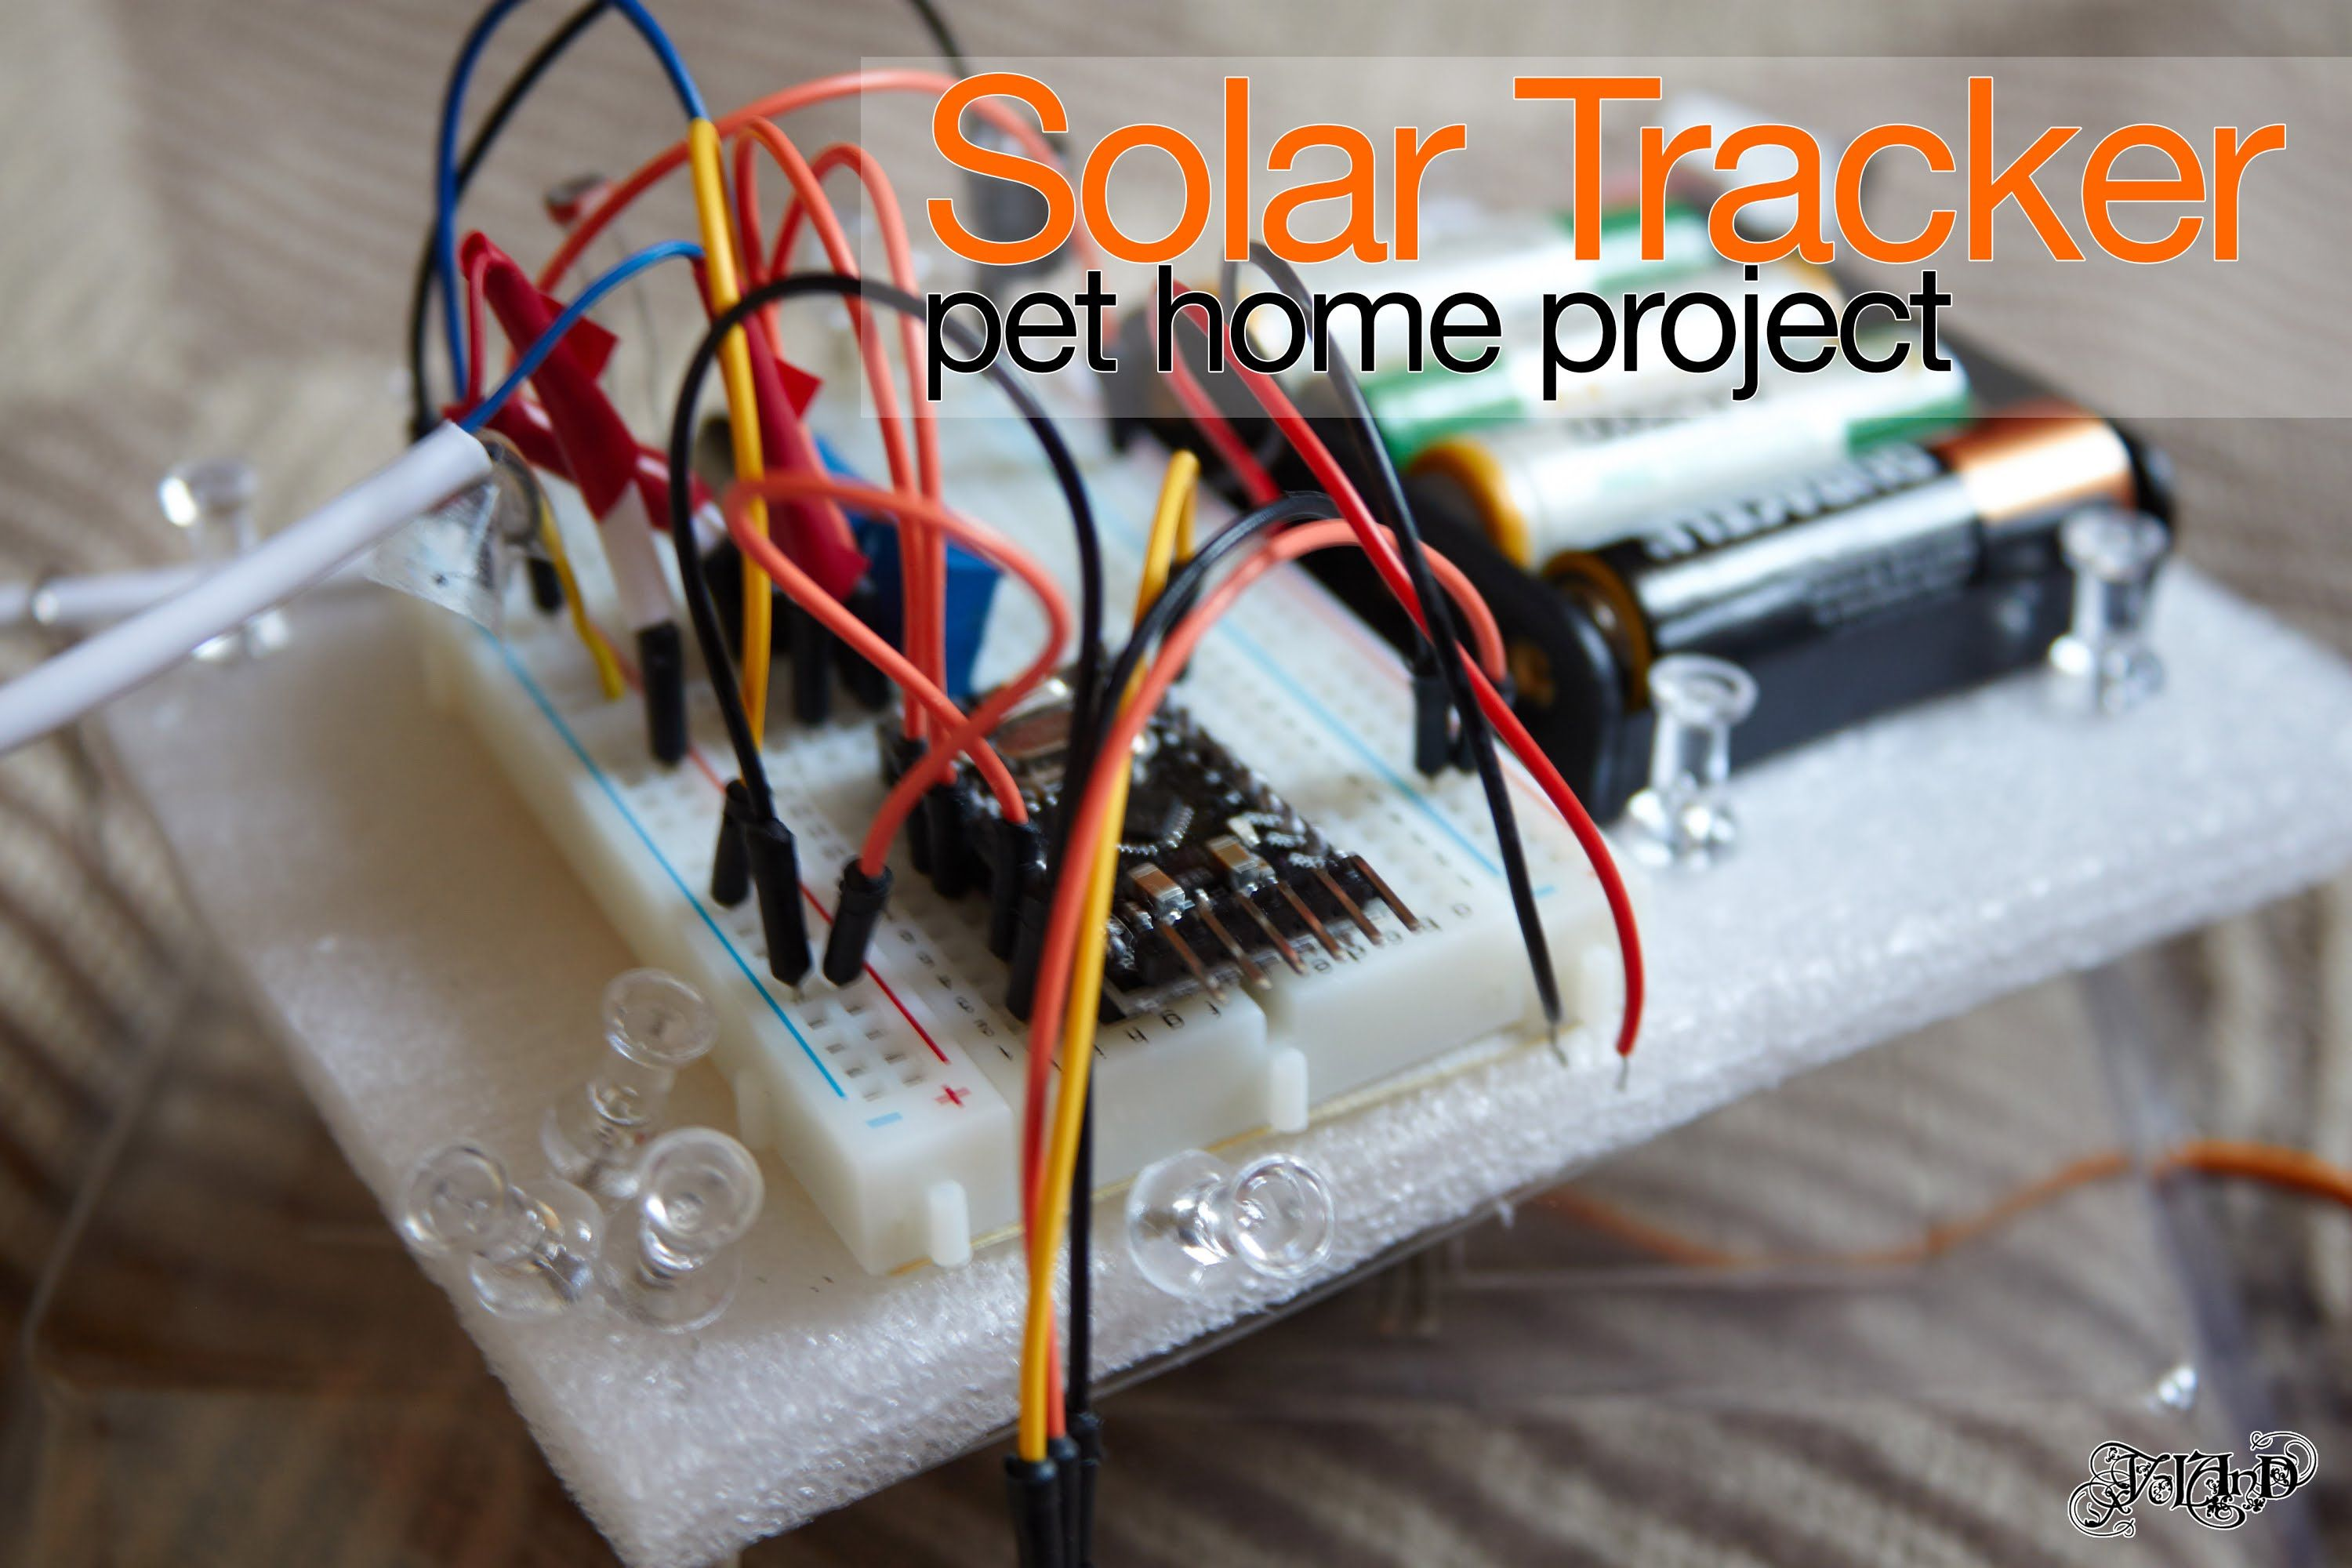 Solar Tracker Based On Atmega328 Arduino Mini Home Pet Project Electronics Projects Circuit Power